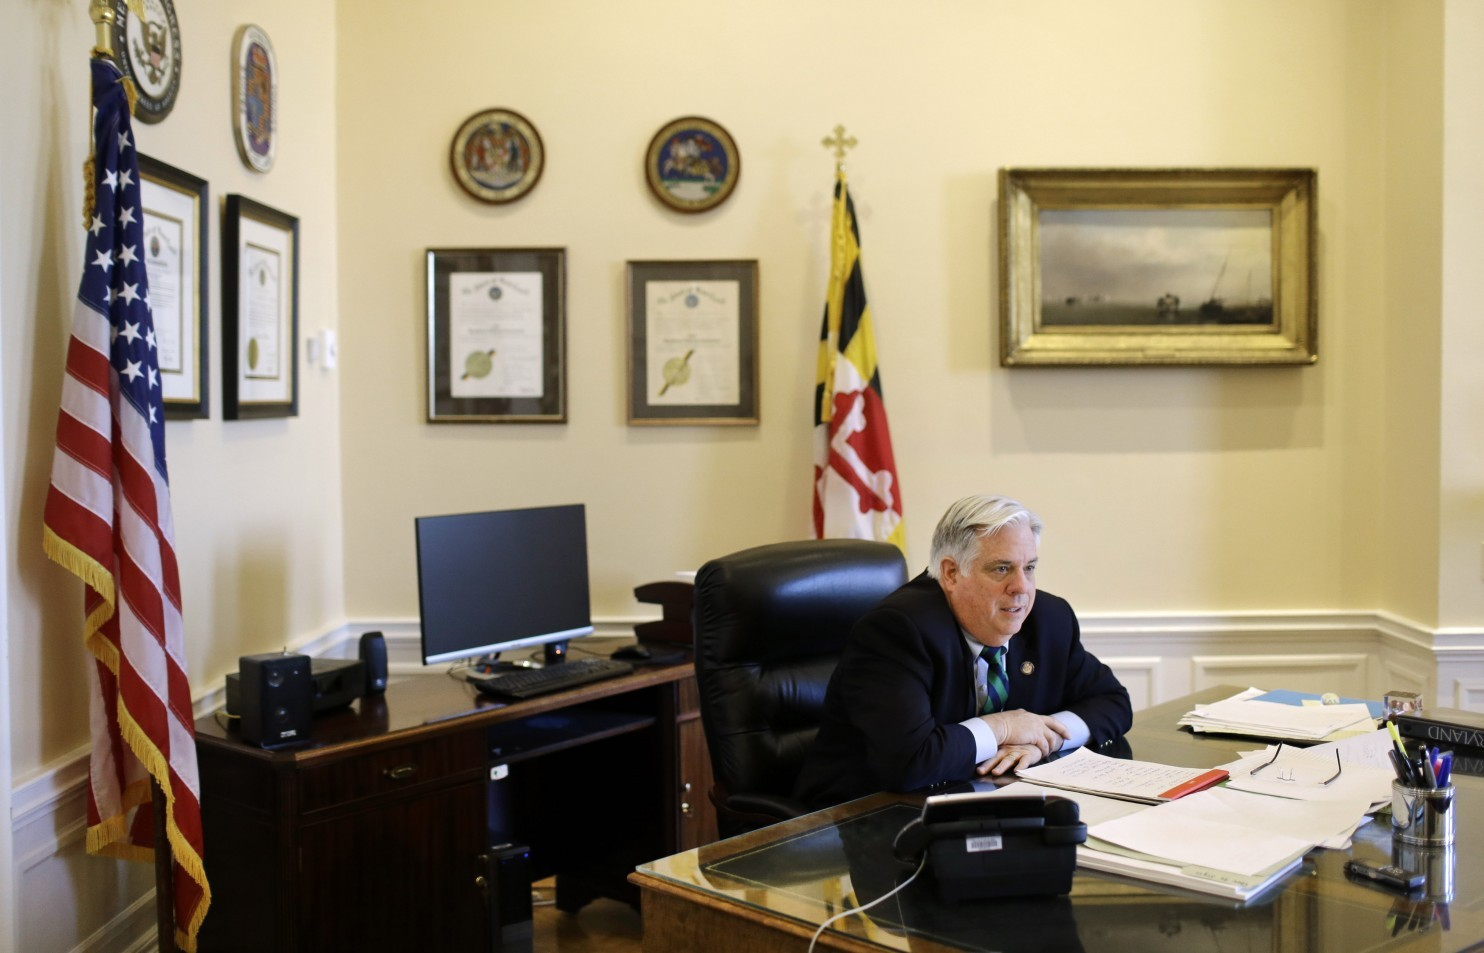 Maryland_Governor_Budget-0ef63-620